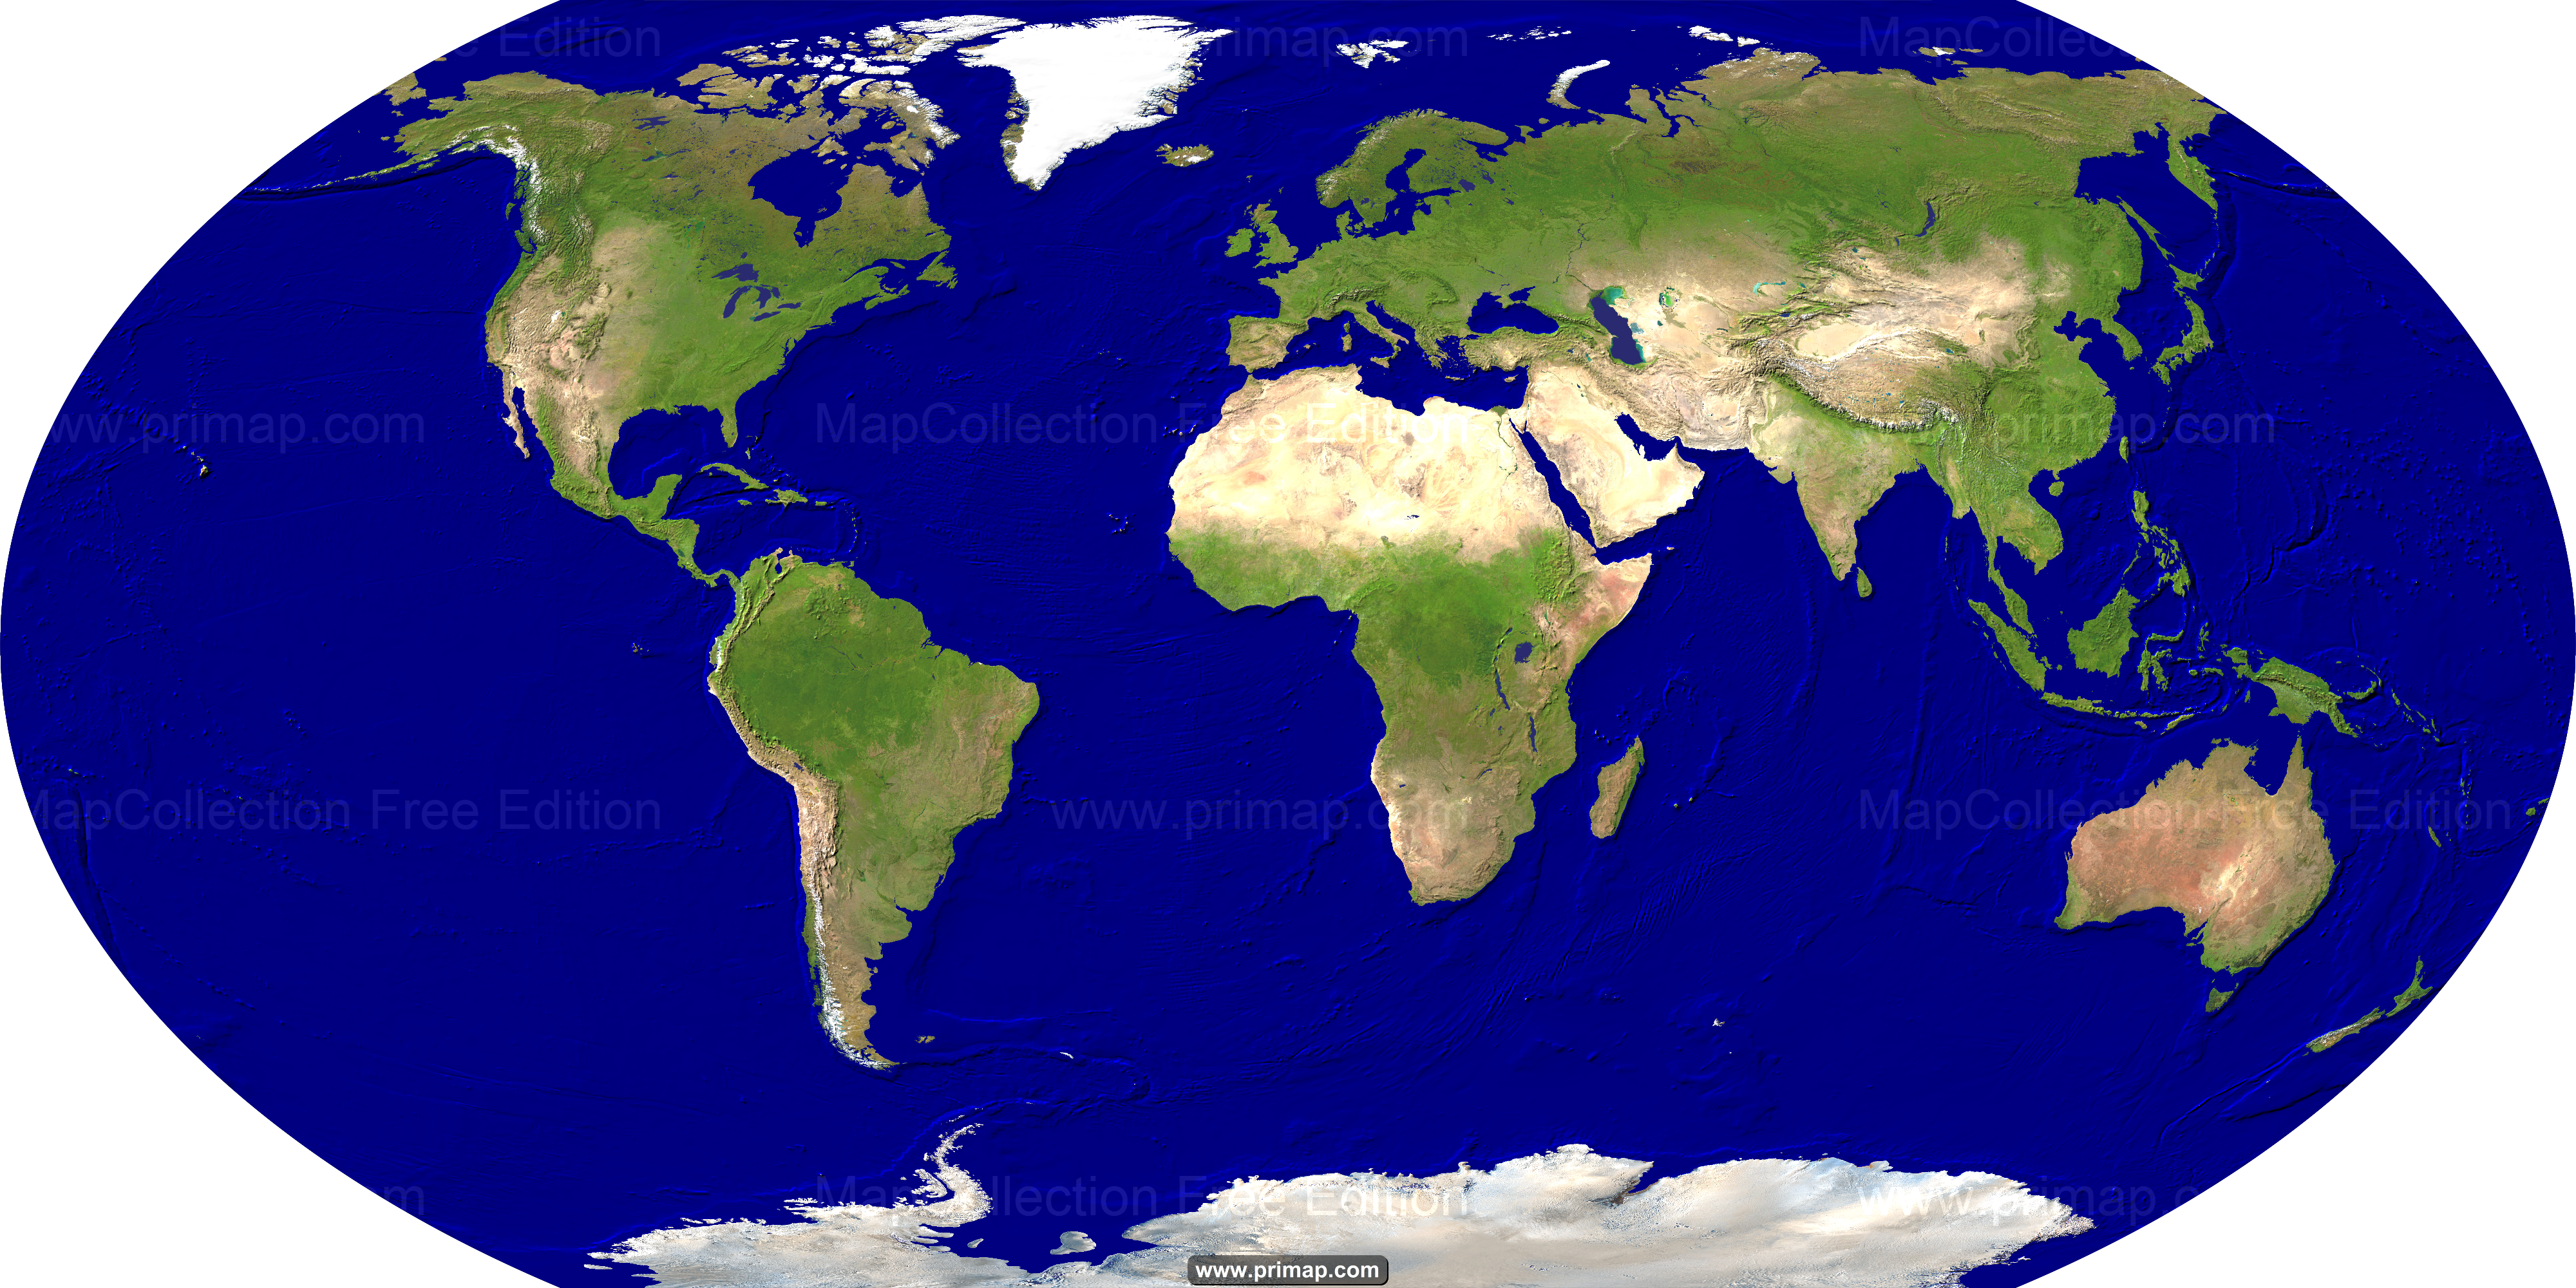 Primap world maps show map sciox Images